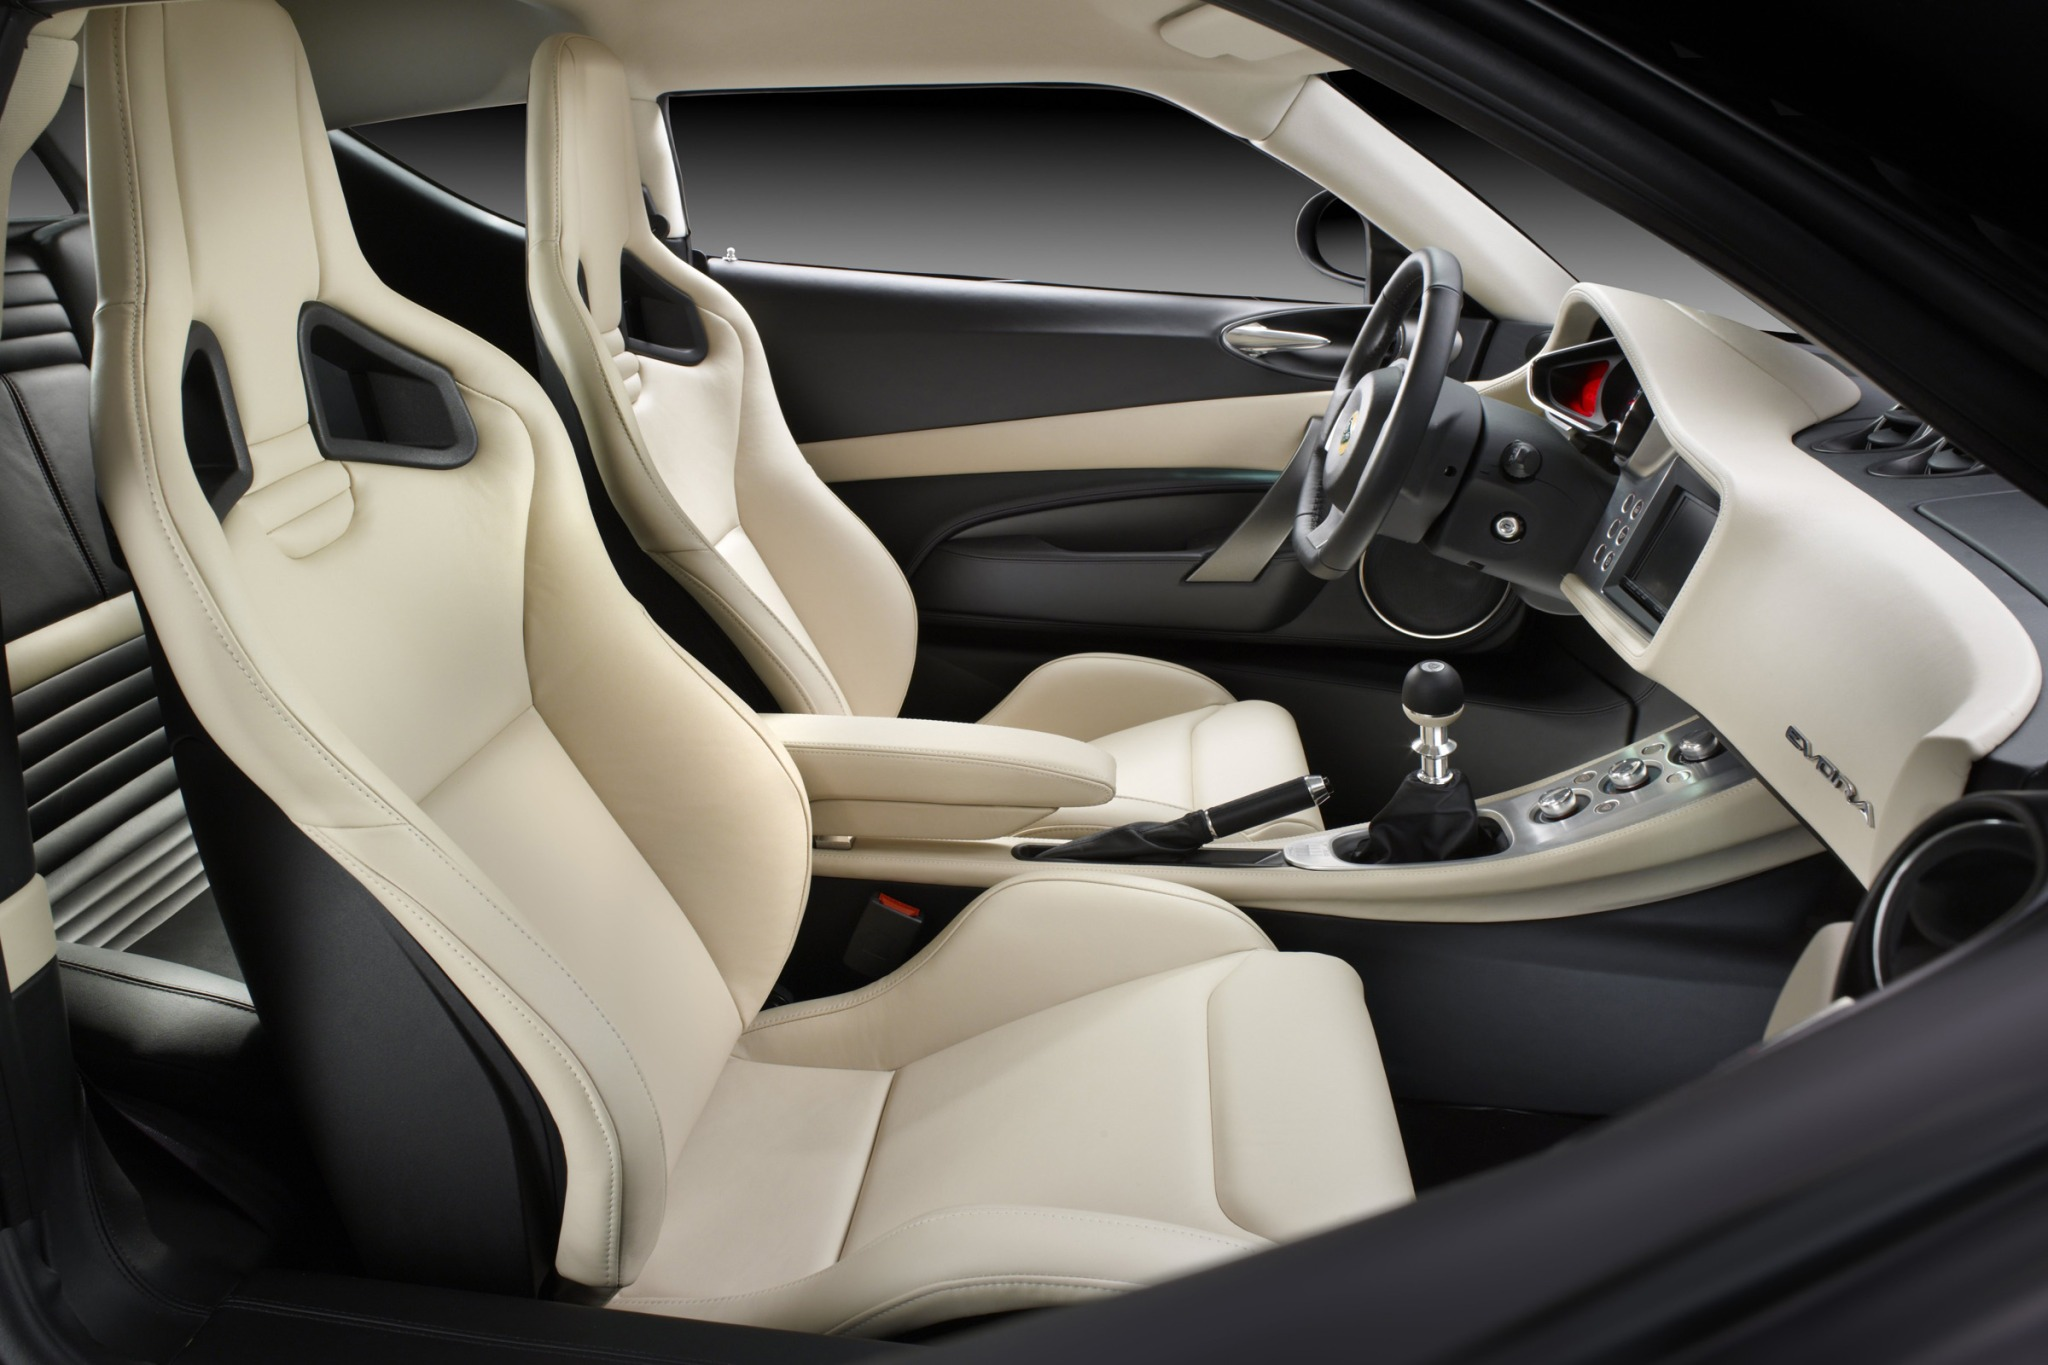 2013 Lotus Evora S 2+2 Co interior #5